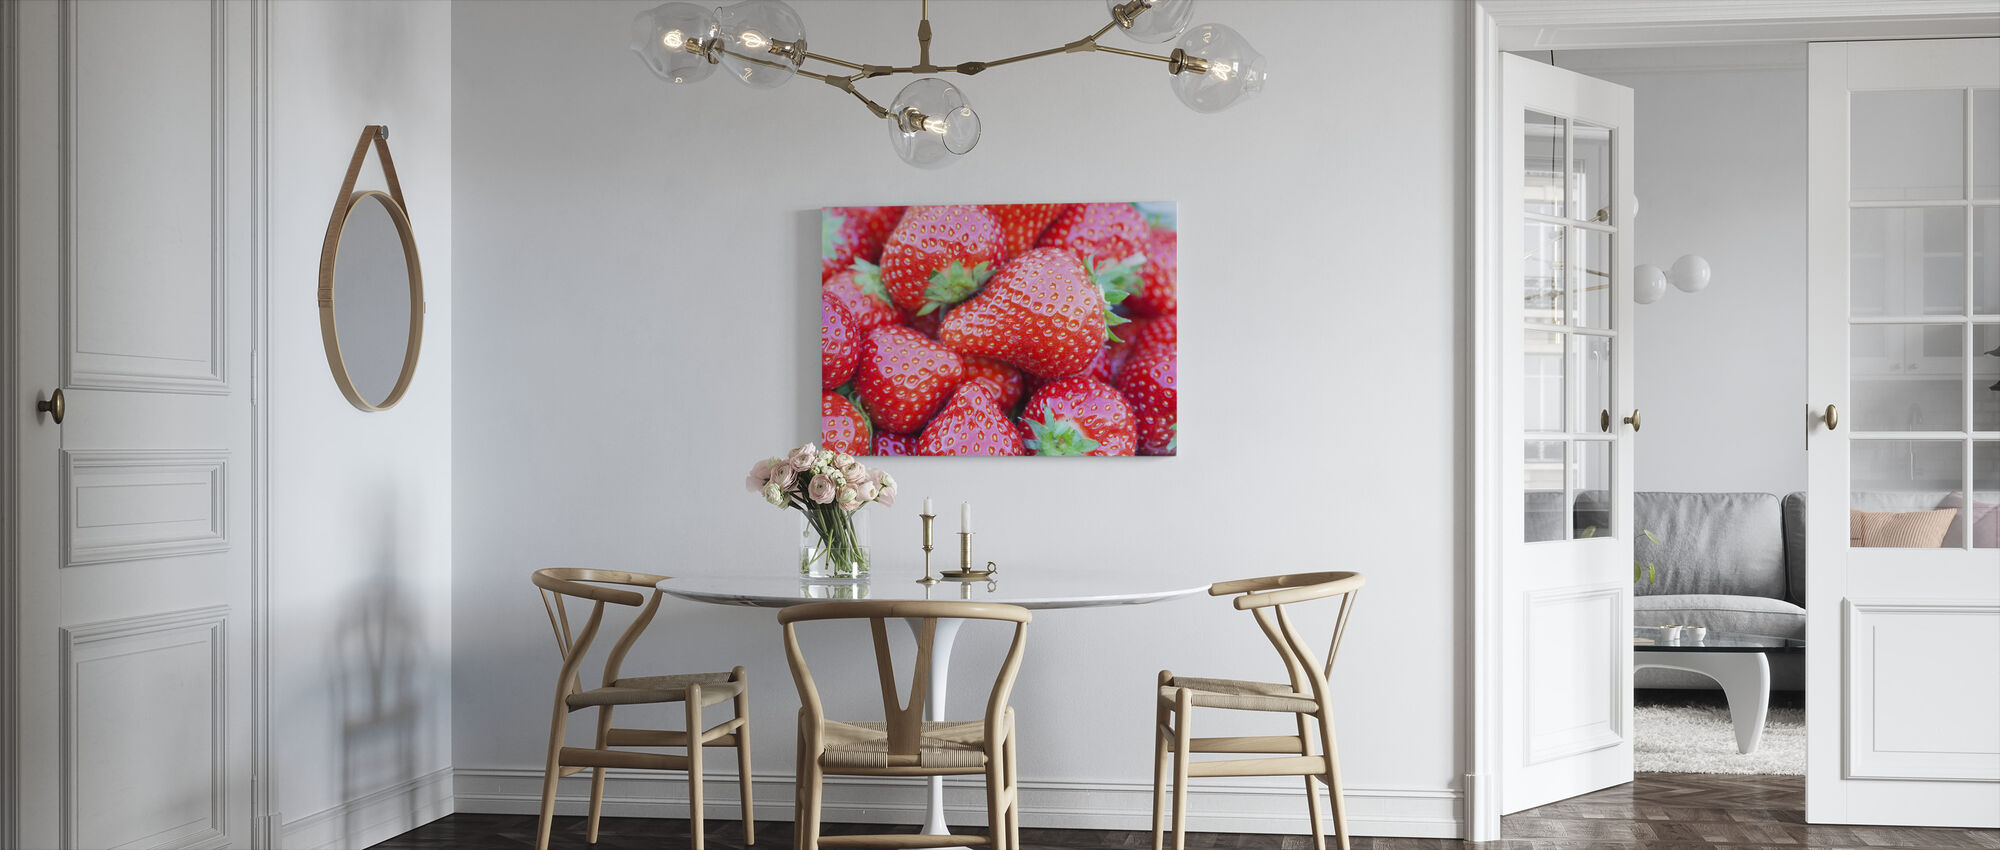 Strawberry - Canvas print - Kitchen